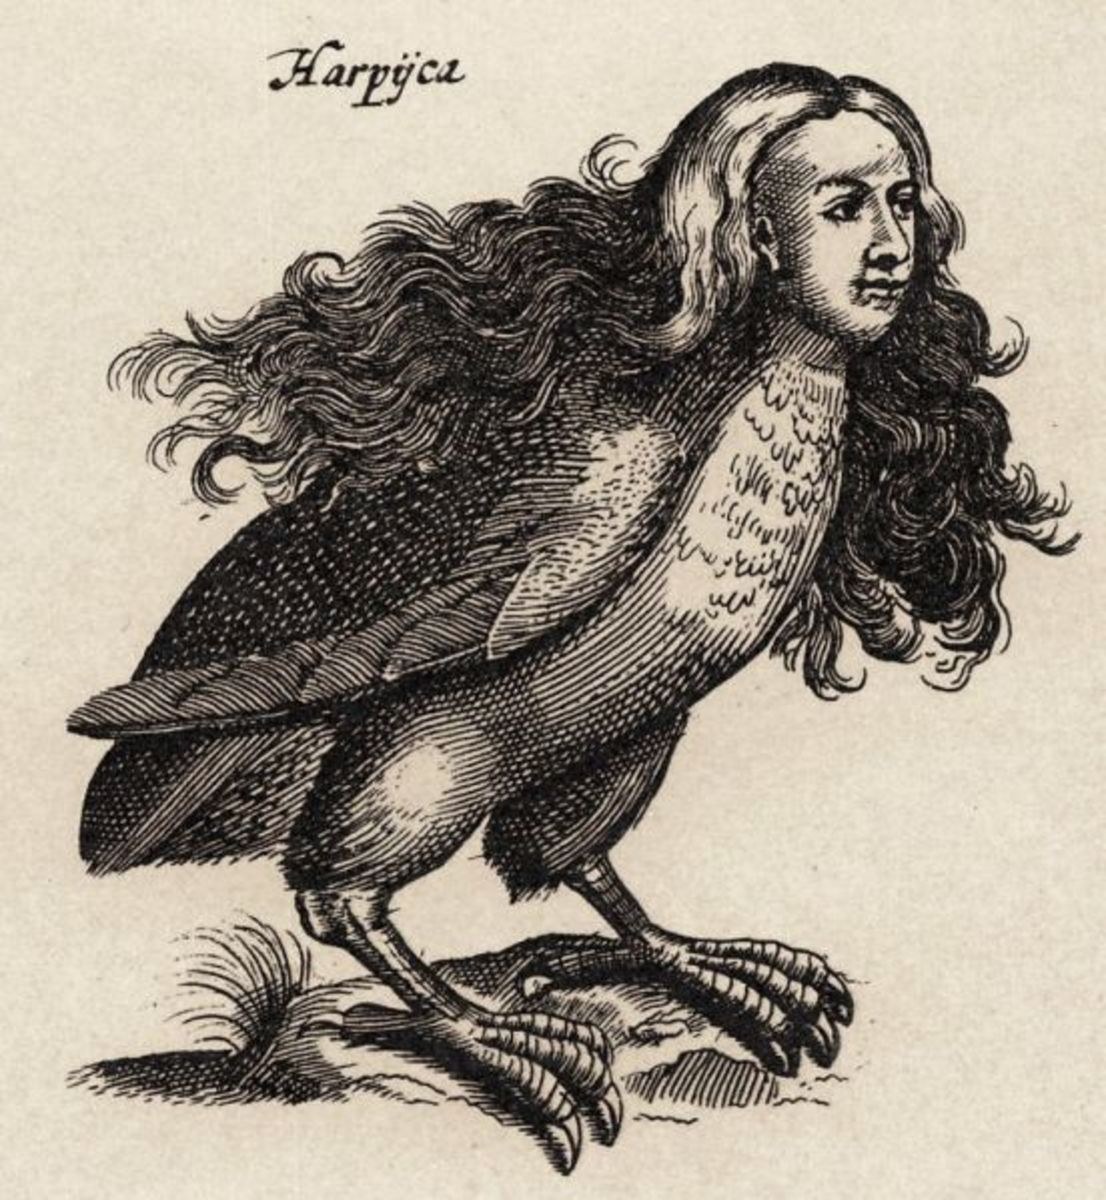 1660 Illustration of a Harpy by Matthius Merian